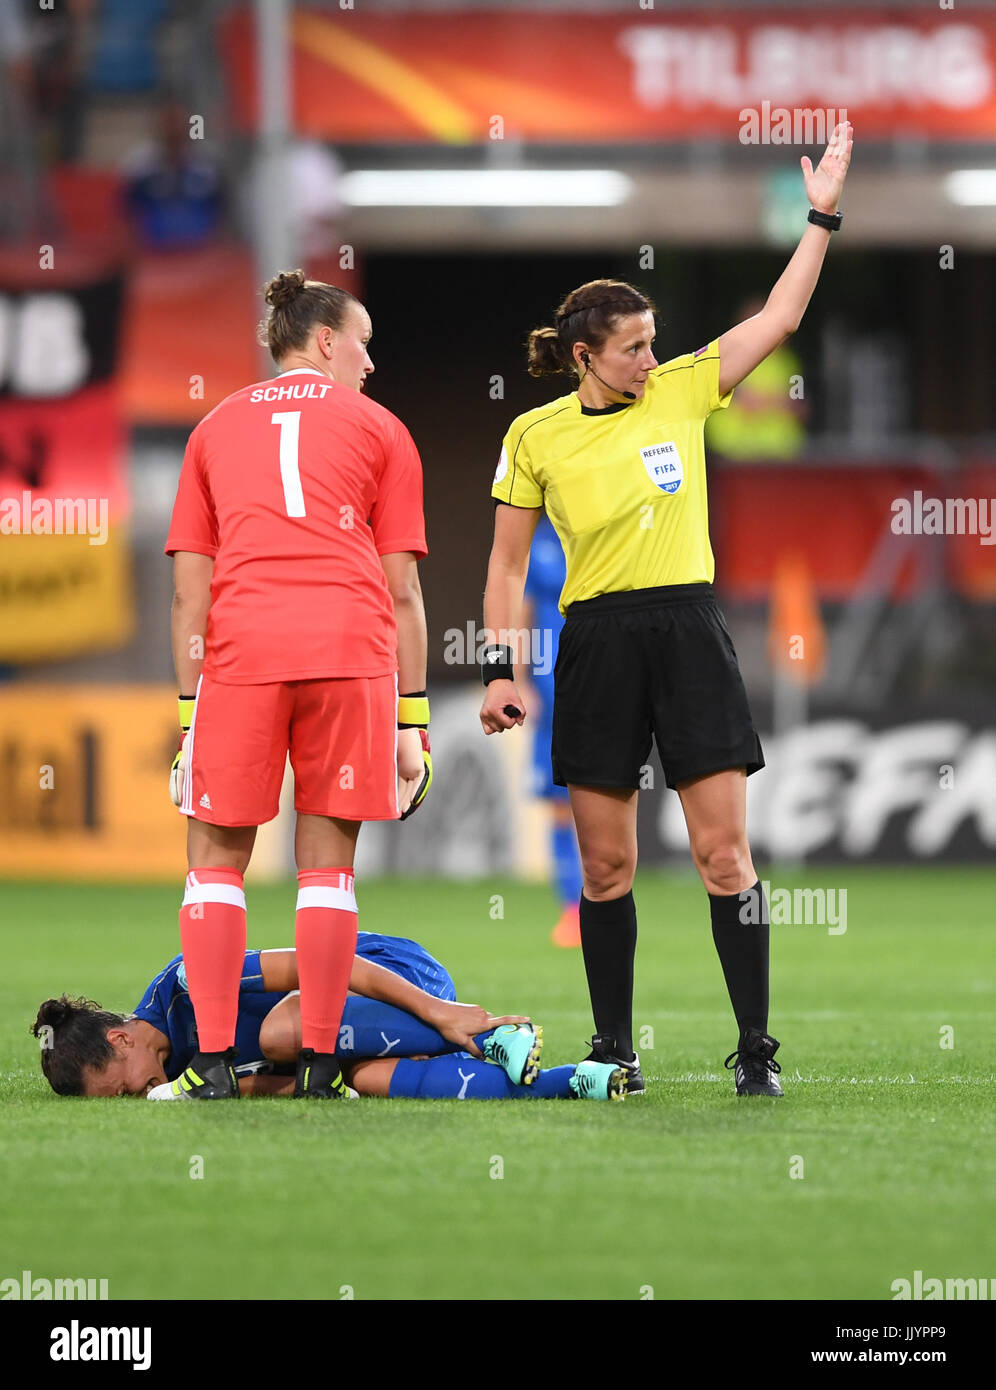 cc8fca72d Ilaria Mauro from Italy lies injured on the ground while German goalkeeper  Almuth Schult and referee Kateryna Monzul look on during the women s  European ...